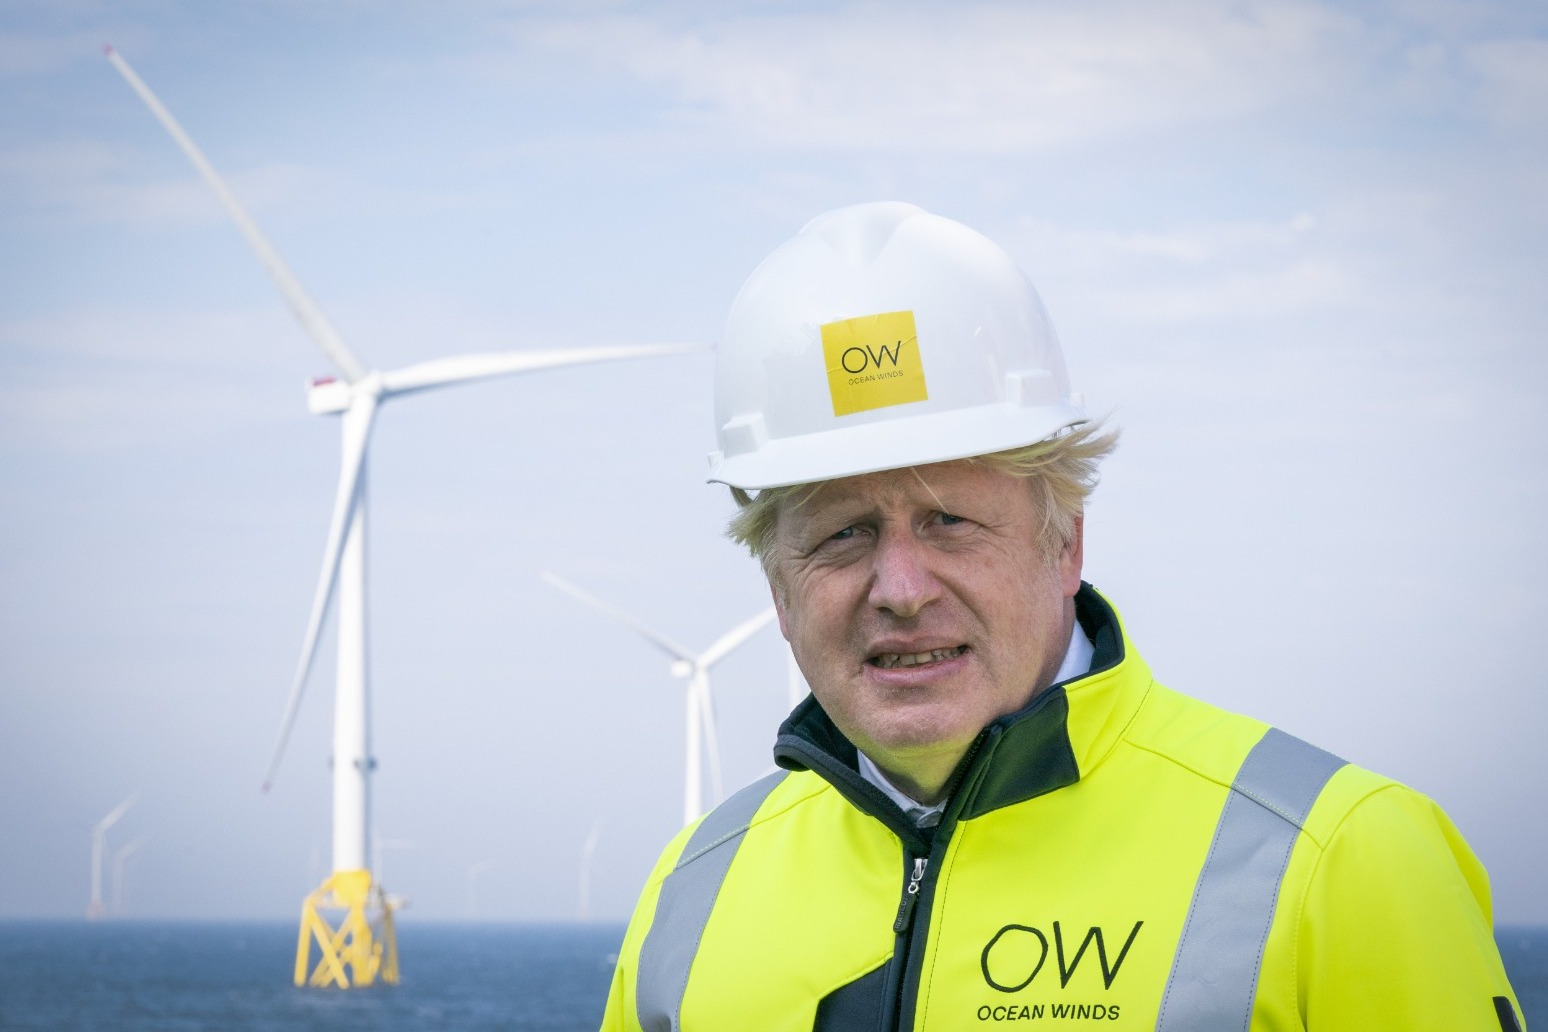 Government to review 'green' energy tariff claims